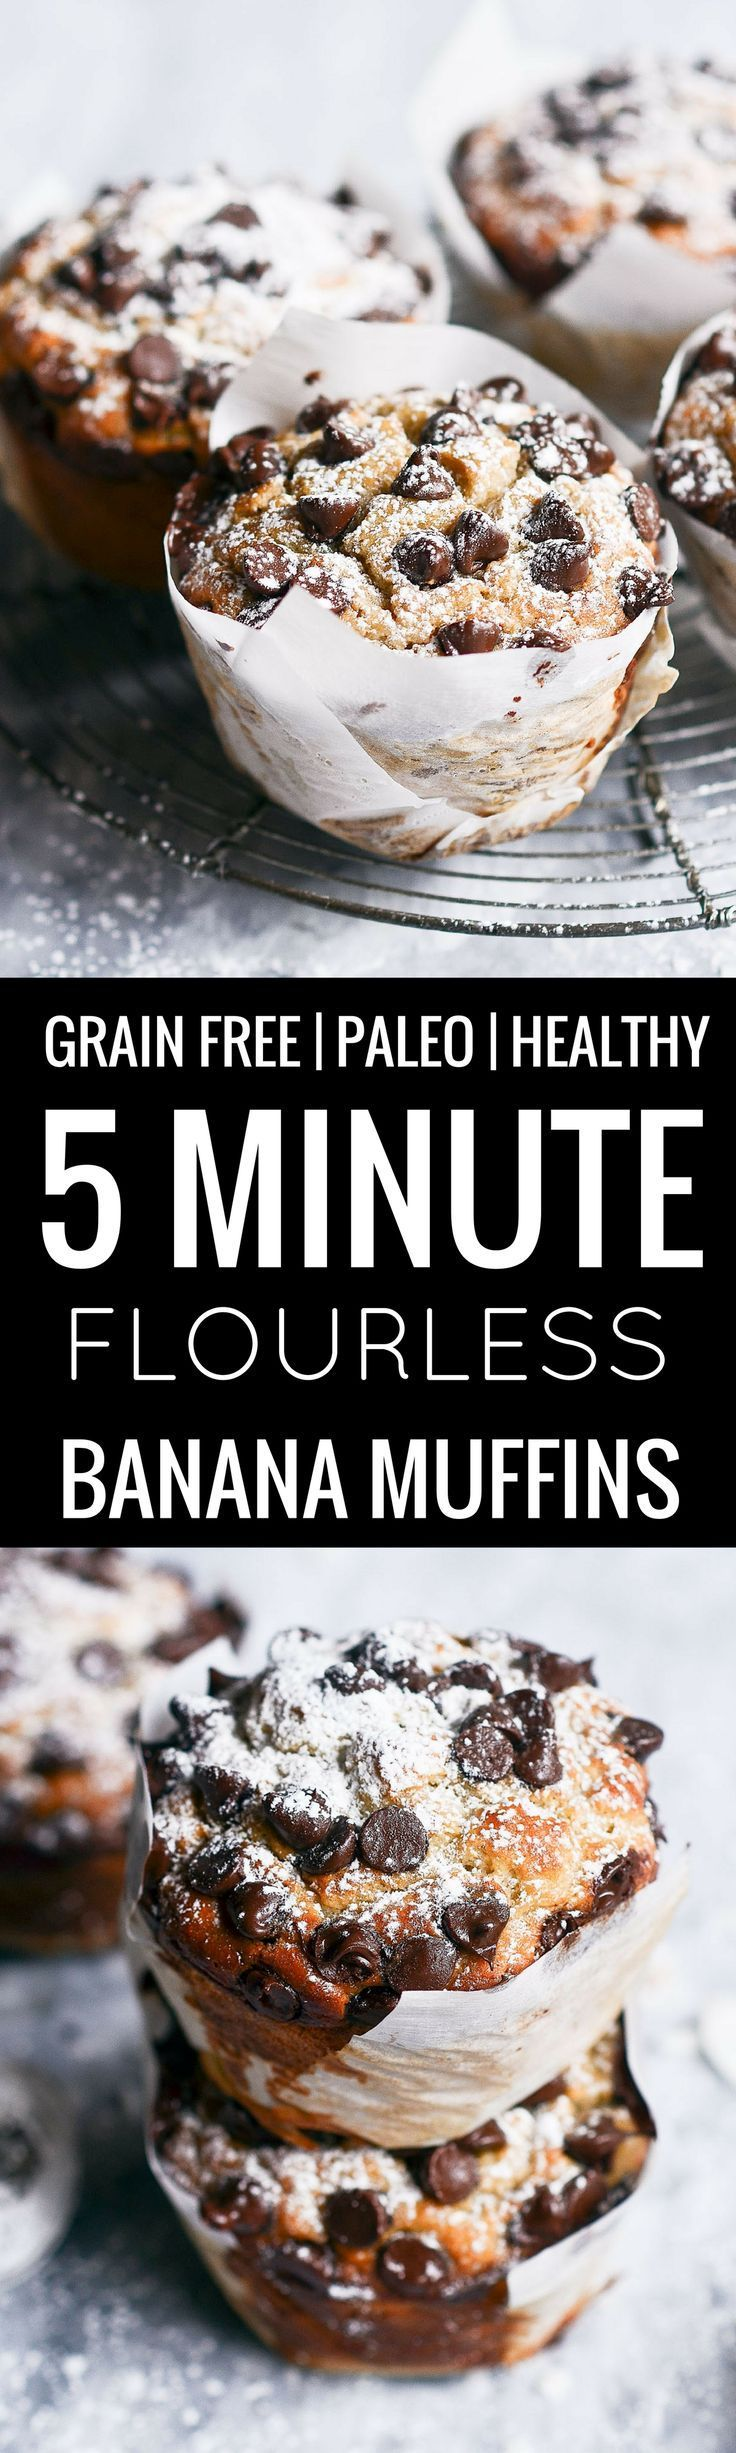 The most delicious paleo banana muffins made in 5 minutes! Incredibly soft and fluffy muffins that are healthy and gluten free.